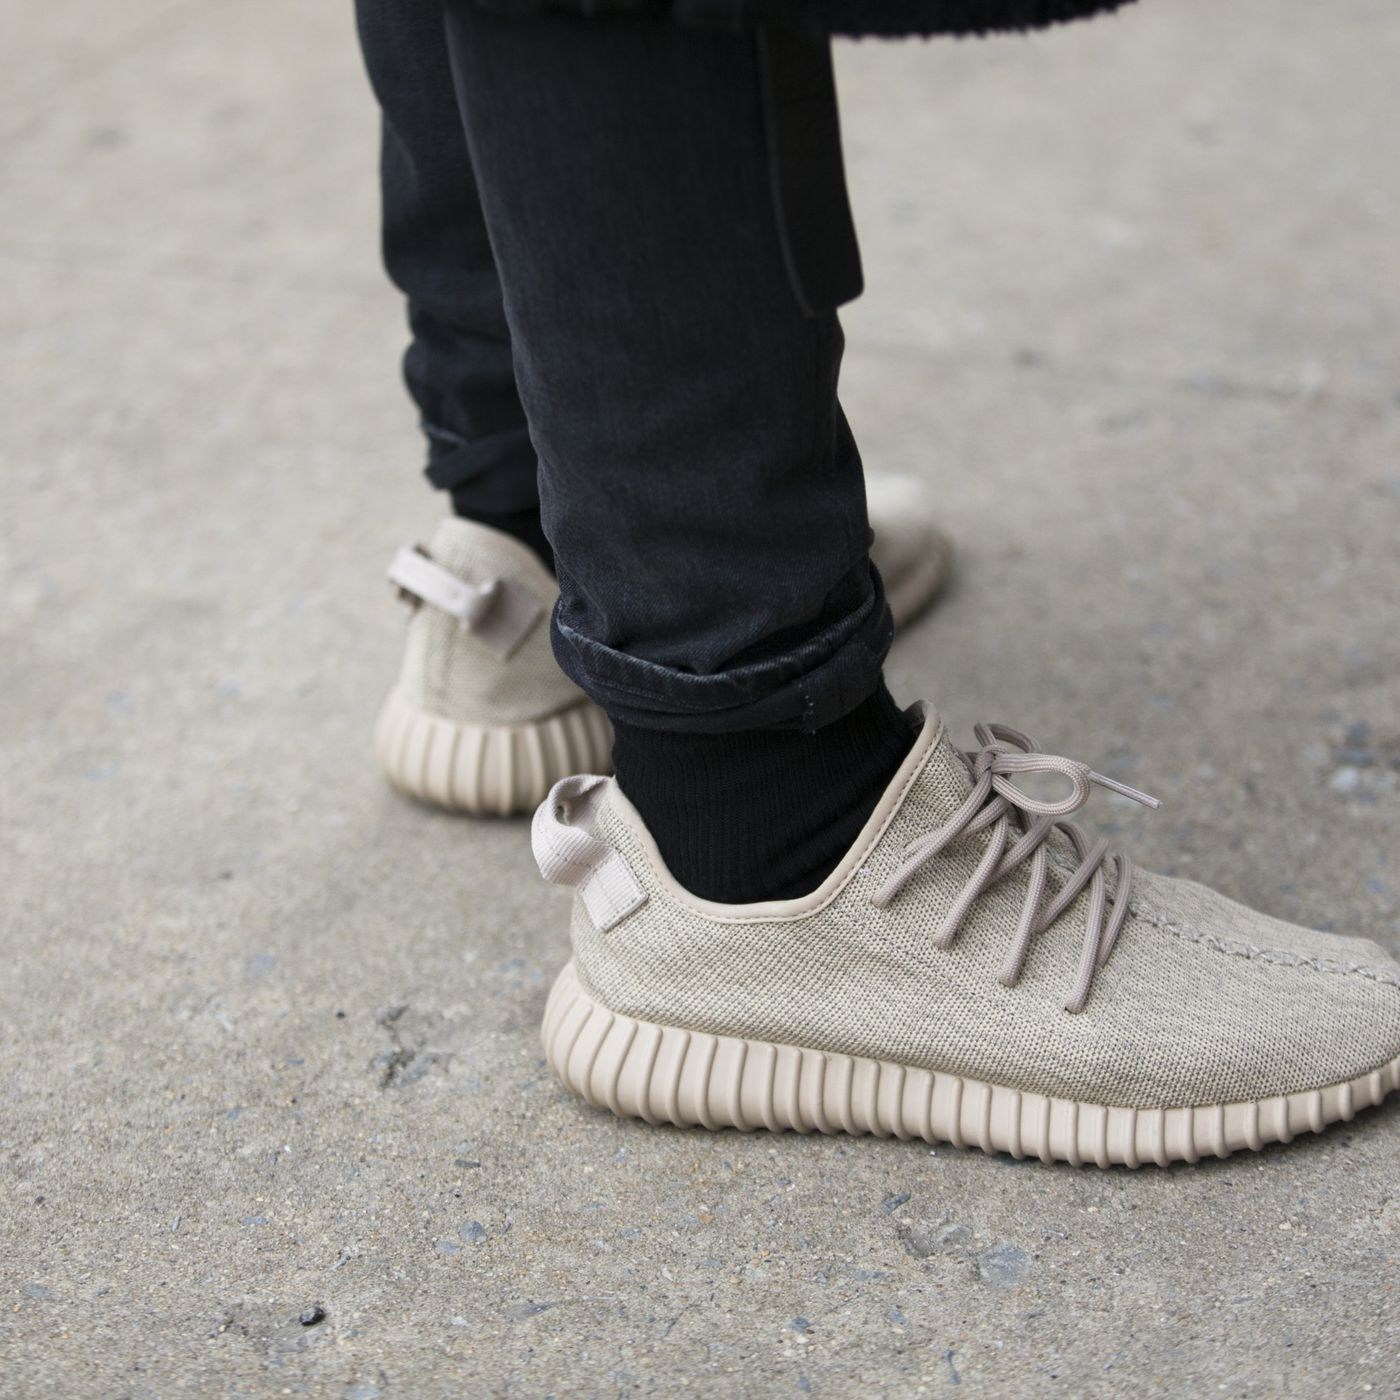 premium selection 17214 c36c6 Why Kanye West's Adidas Yeezy is suddenly so easy to buy now ...